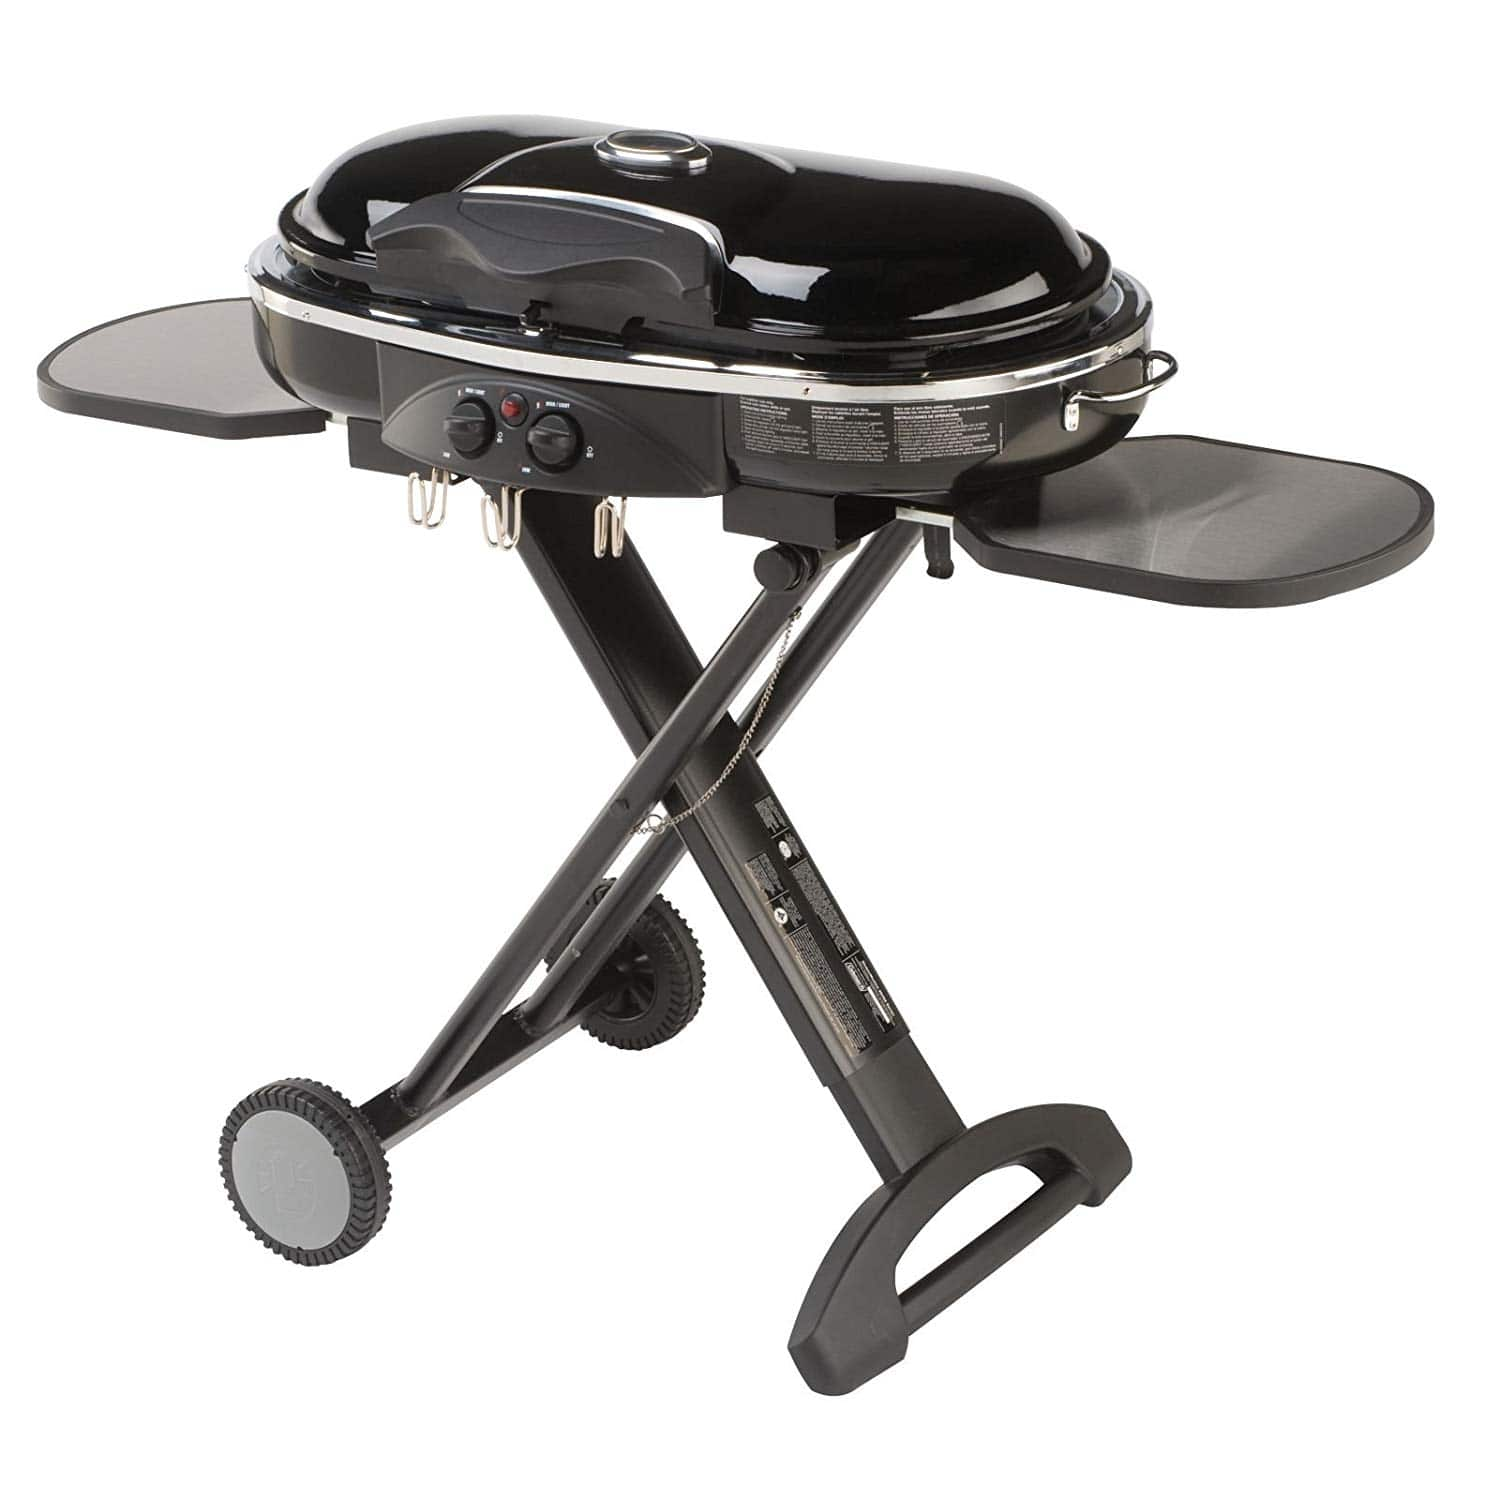 Coleman RoadTrip LXX Grill, Black $112.77 w/ free shipping for Prime members